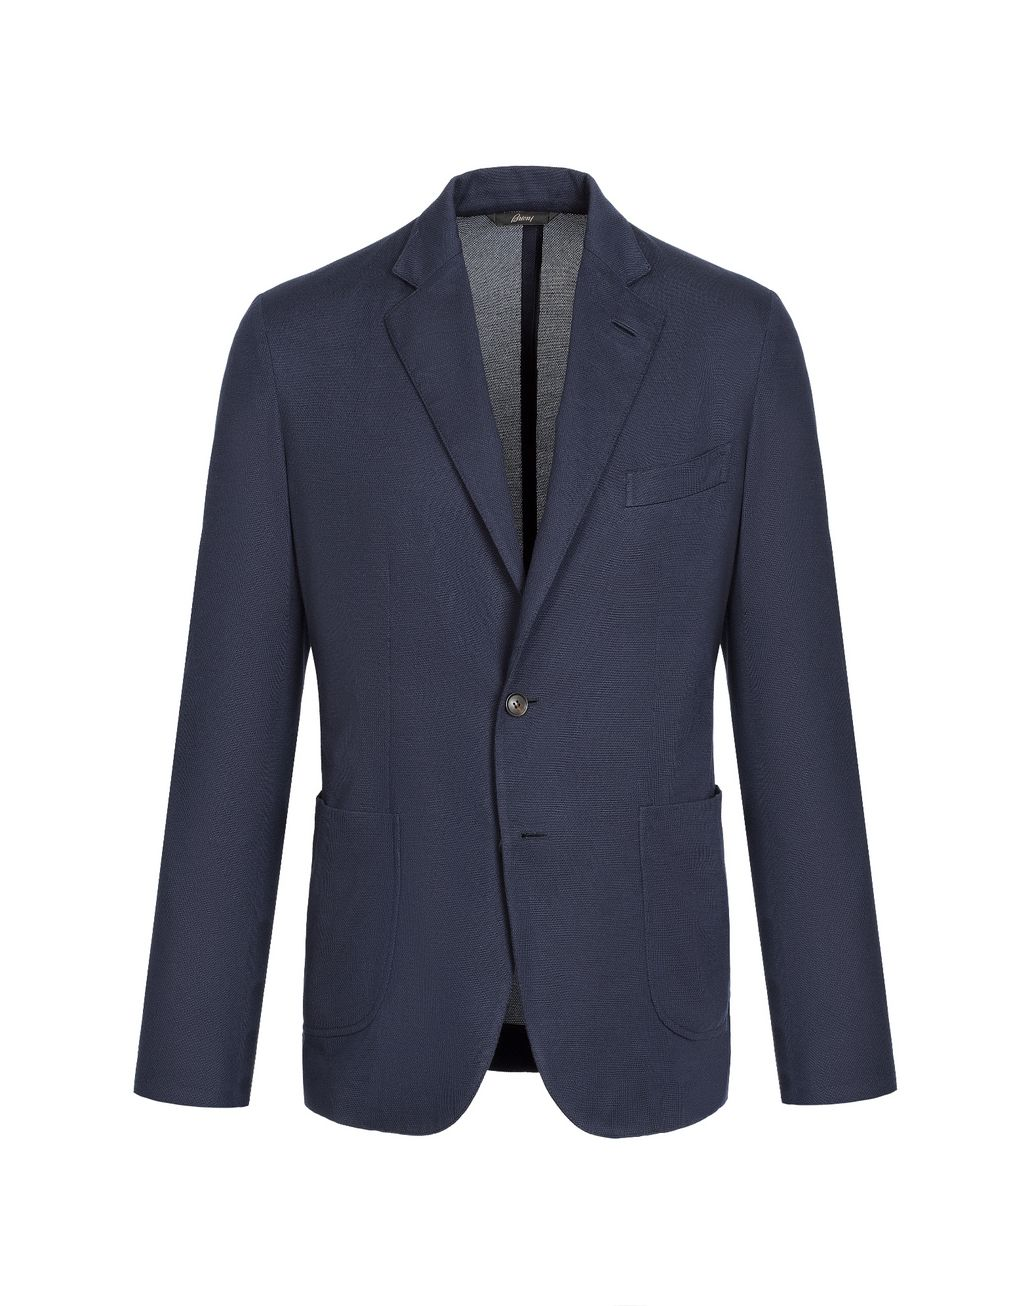 BRIONI Navy Blue Silk Piquet Jacket Jackets [*** pickupInStoreShippingNotGuaranteed_info ***] f